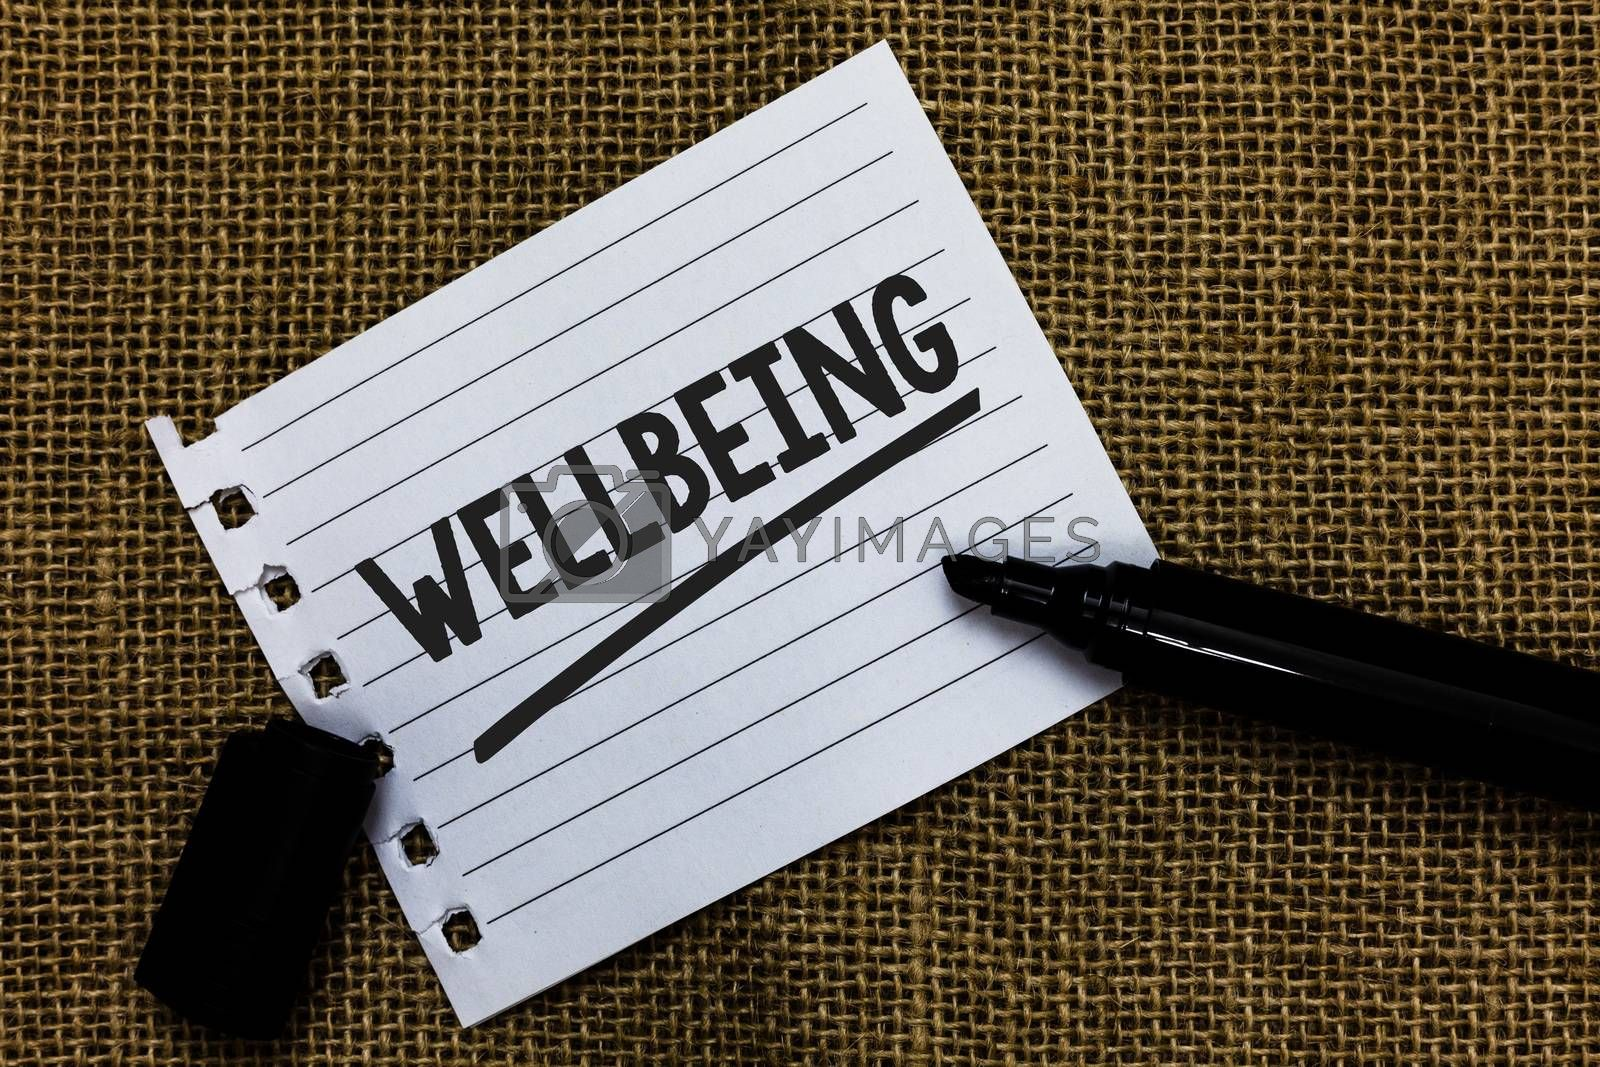 Writing note showing Wellbeing. Business photo showcasing Healthy lifestyle conditions of people life work balance Ideas paper marker pens important inspiration memories love thoughts. by Artur Szczybylo